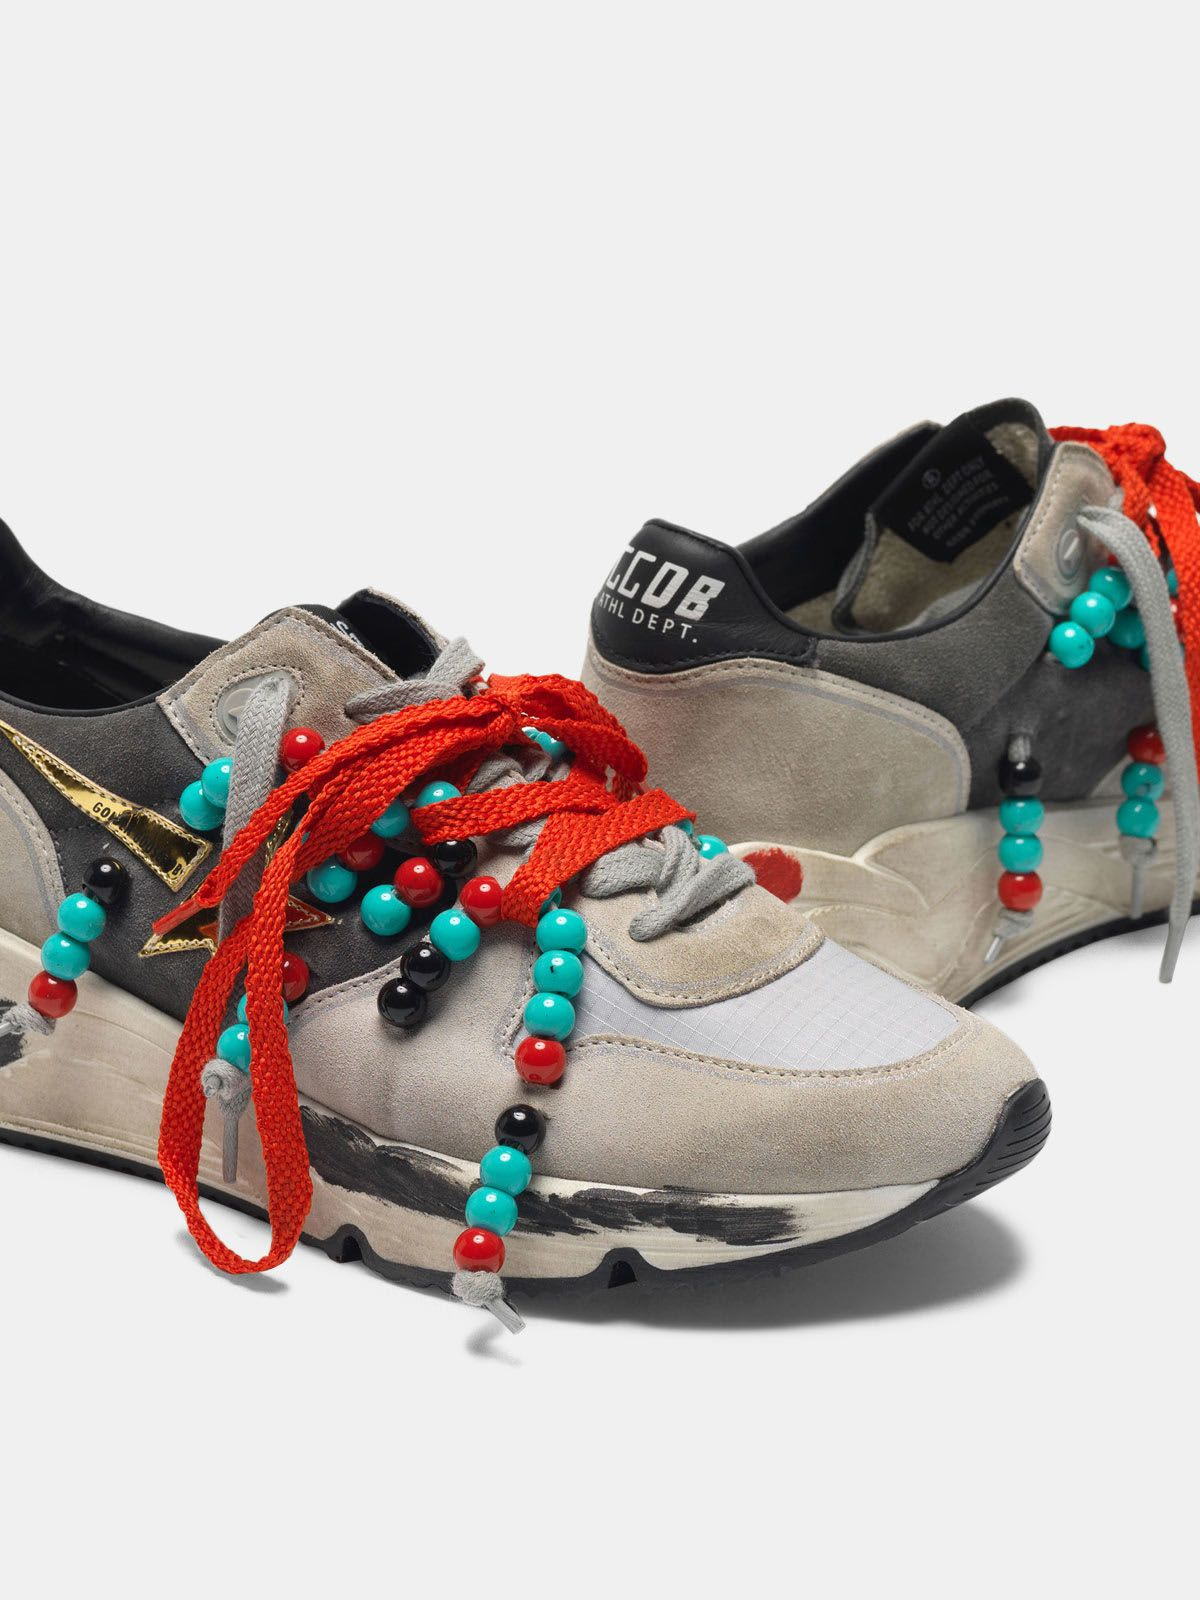 Suede Running Sole sneakers with double laces and beads